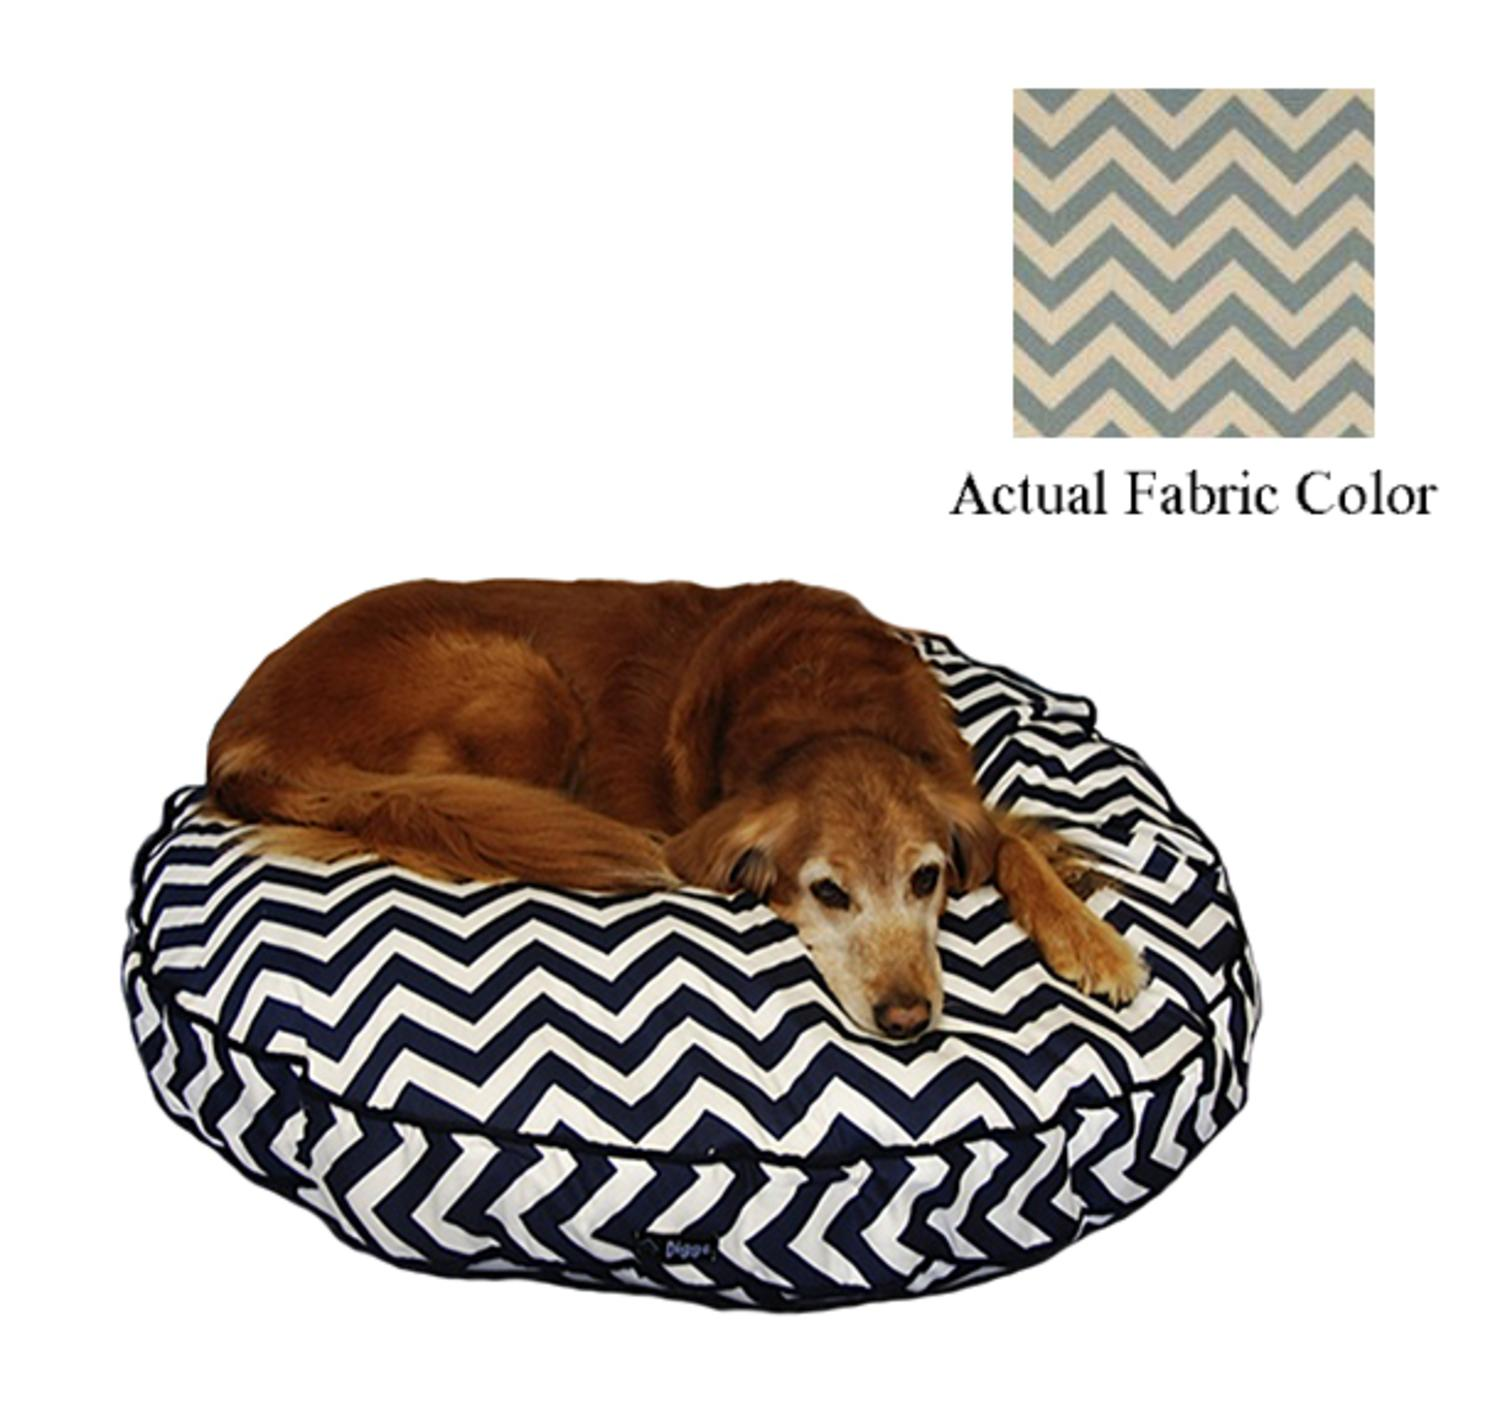 Blue and White Chevron Printed Deluxe Round Pet Dog Bed - Large